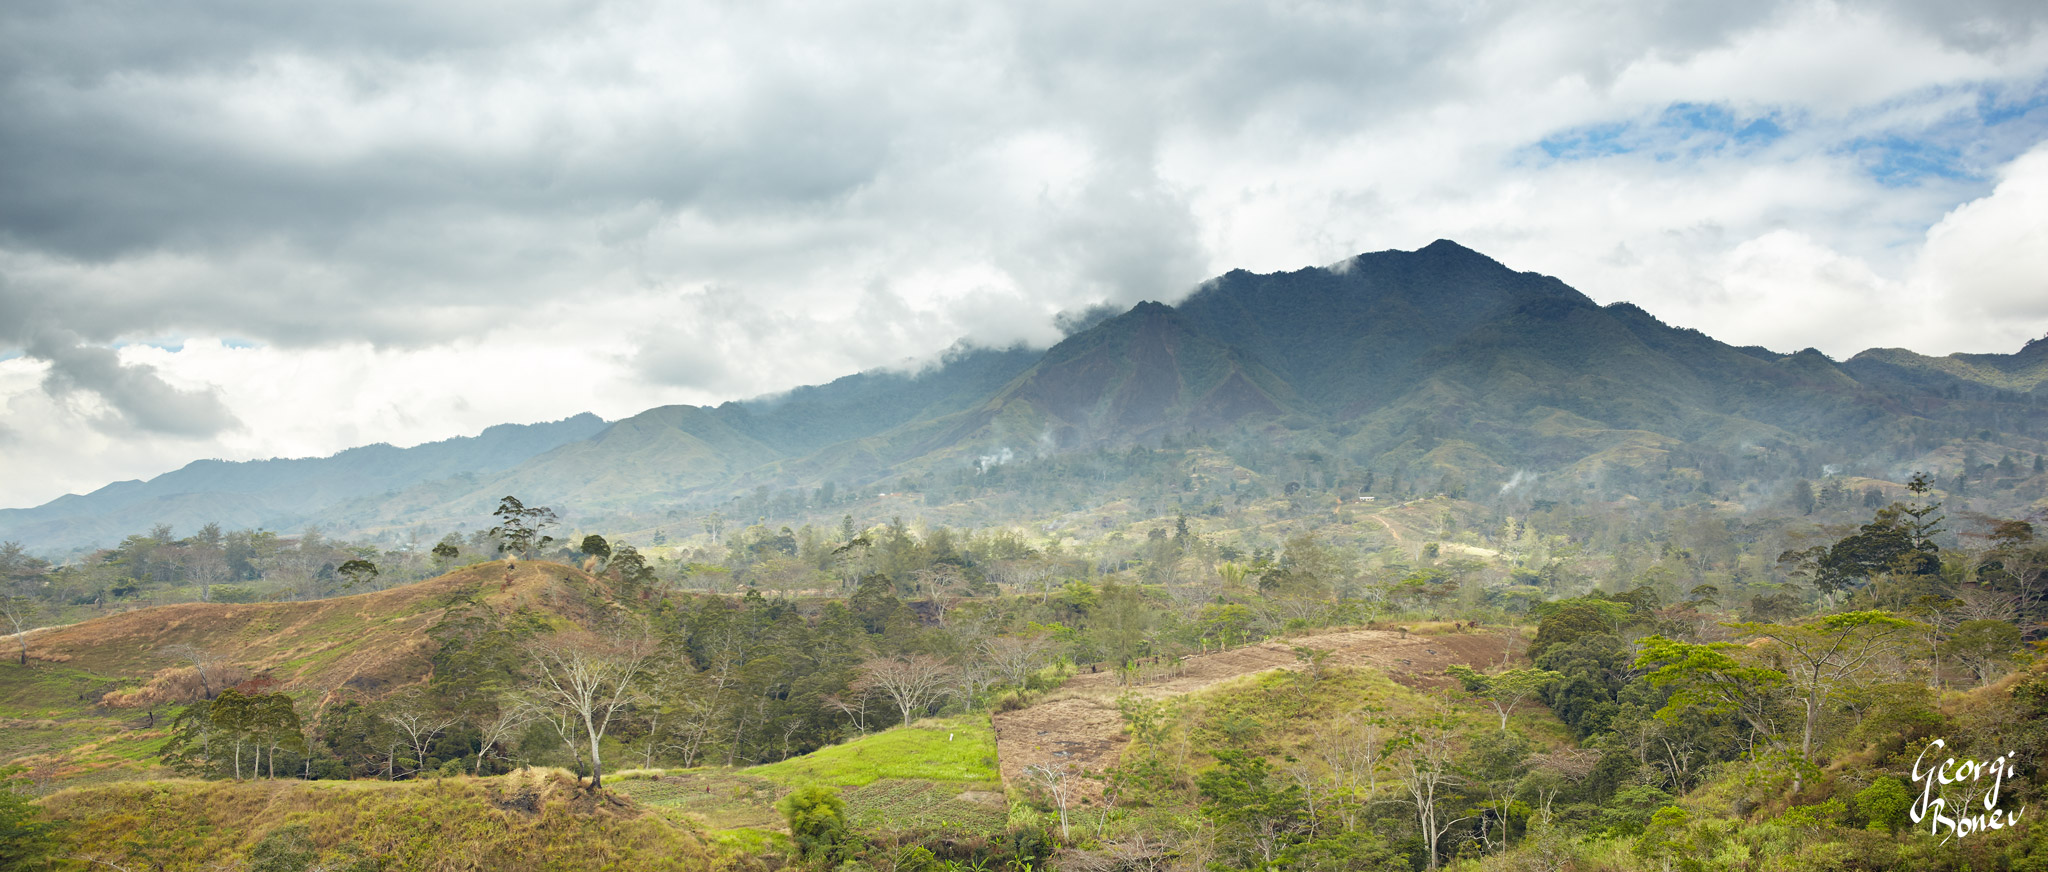 THE FOREST OF BISMARCK MOUNTAIN RANGE IN PAPUA NEW GUINEA